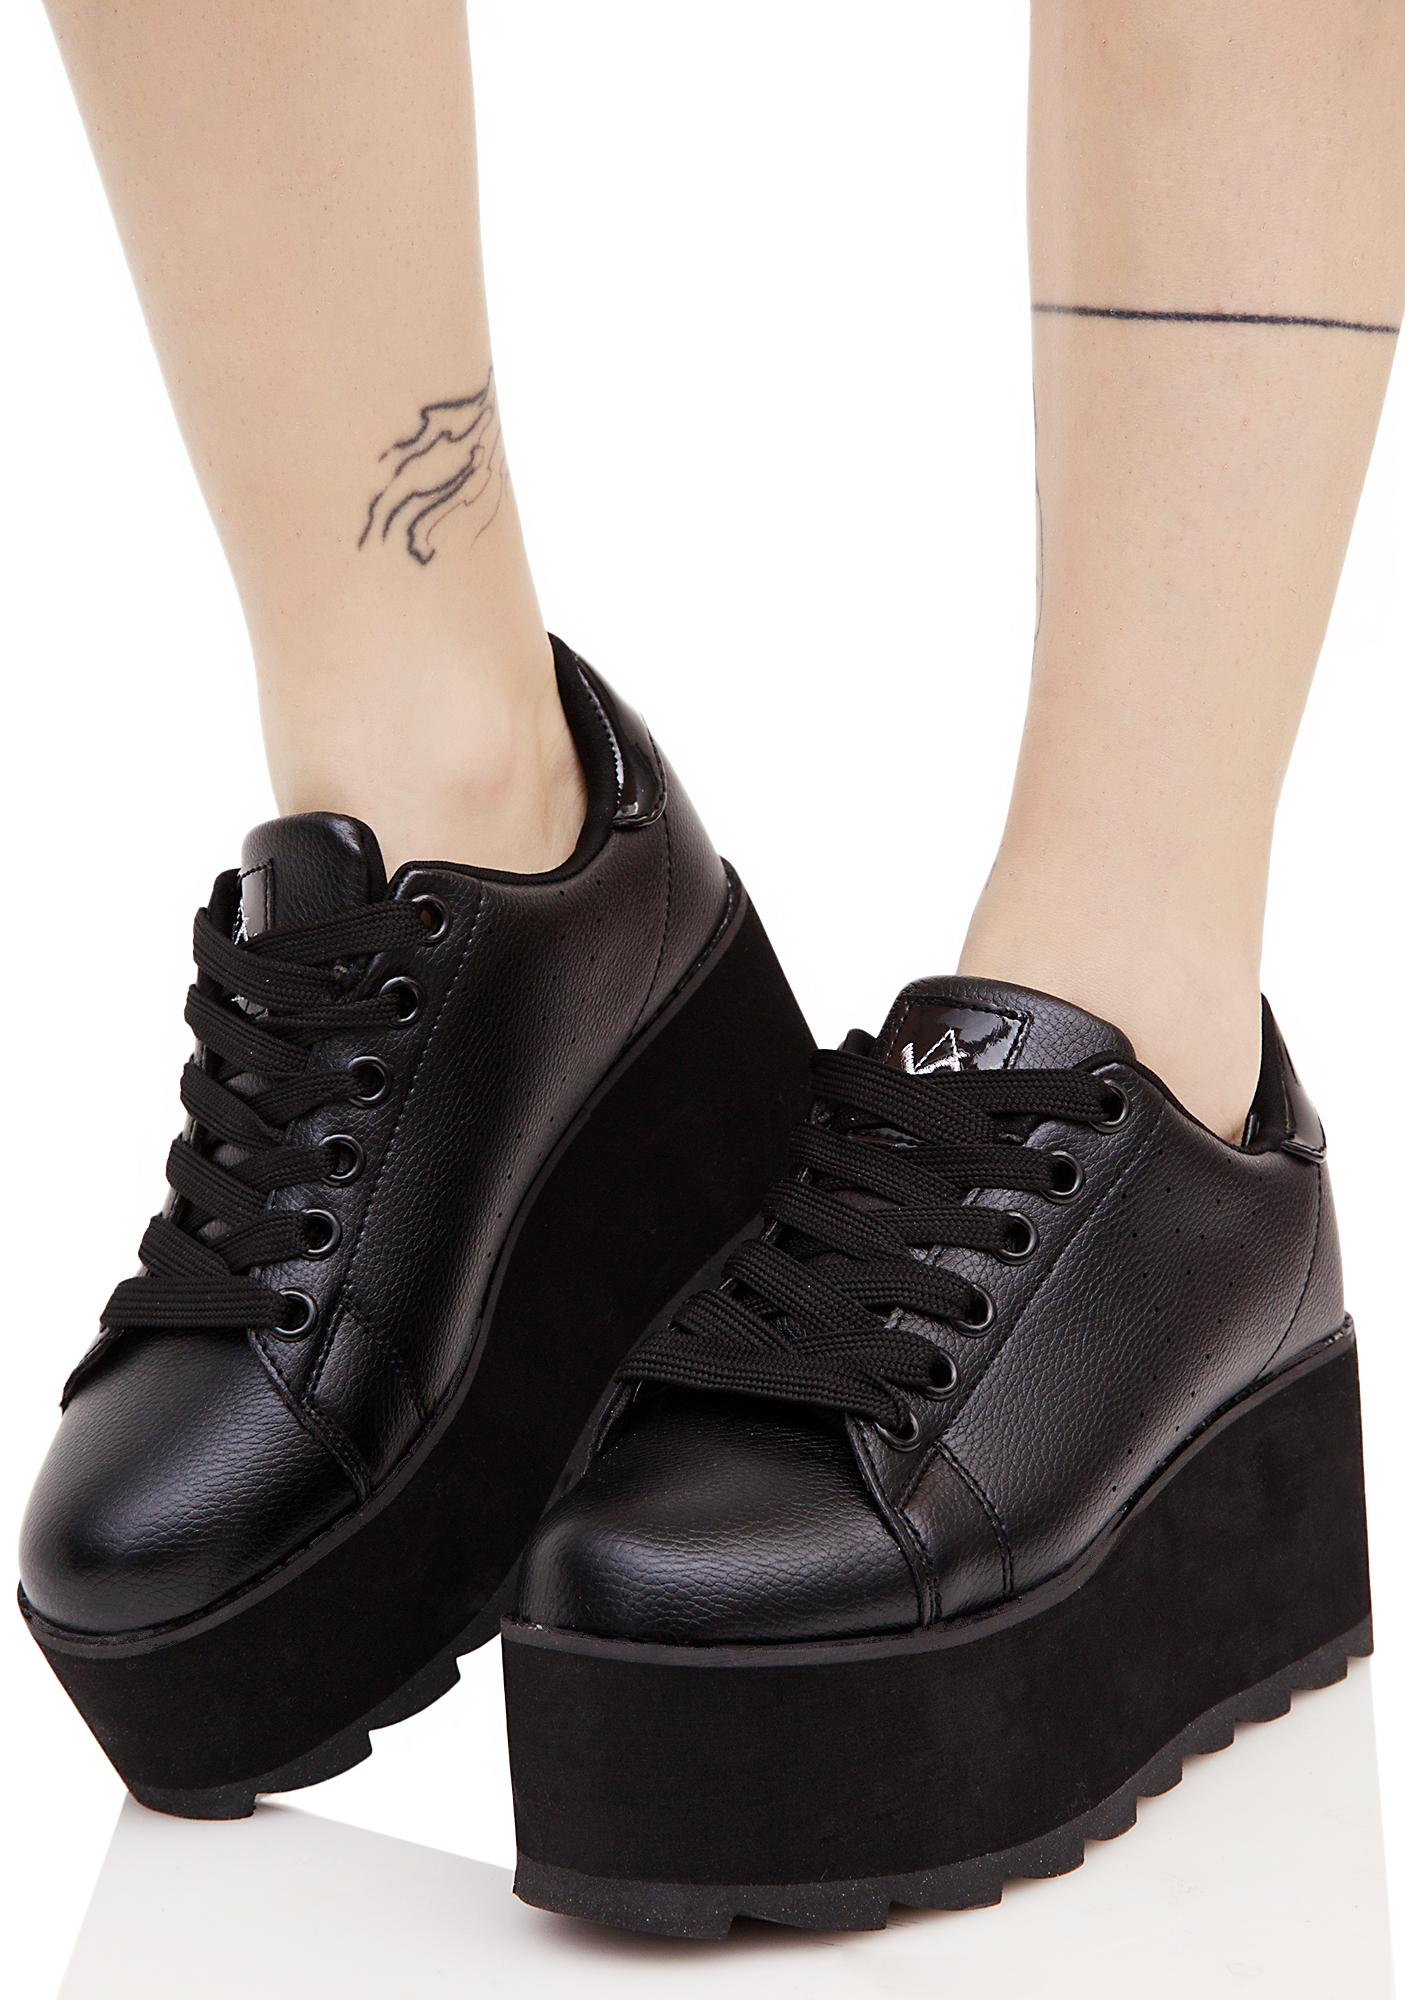 Platform Shoes Laces